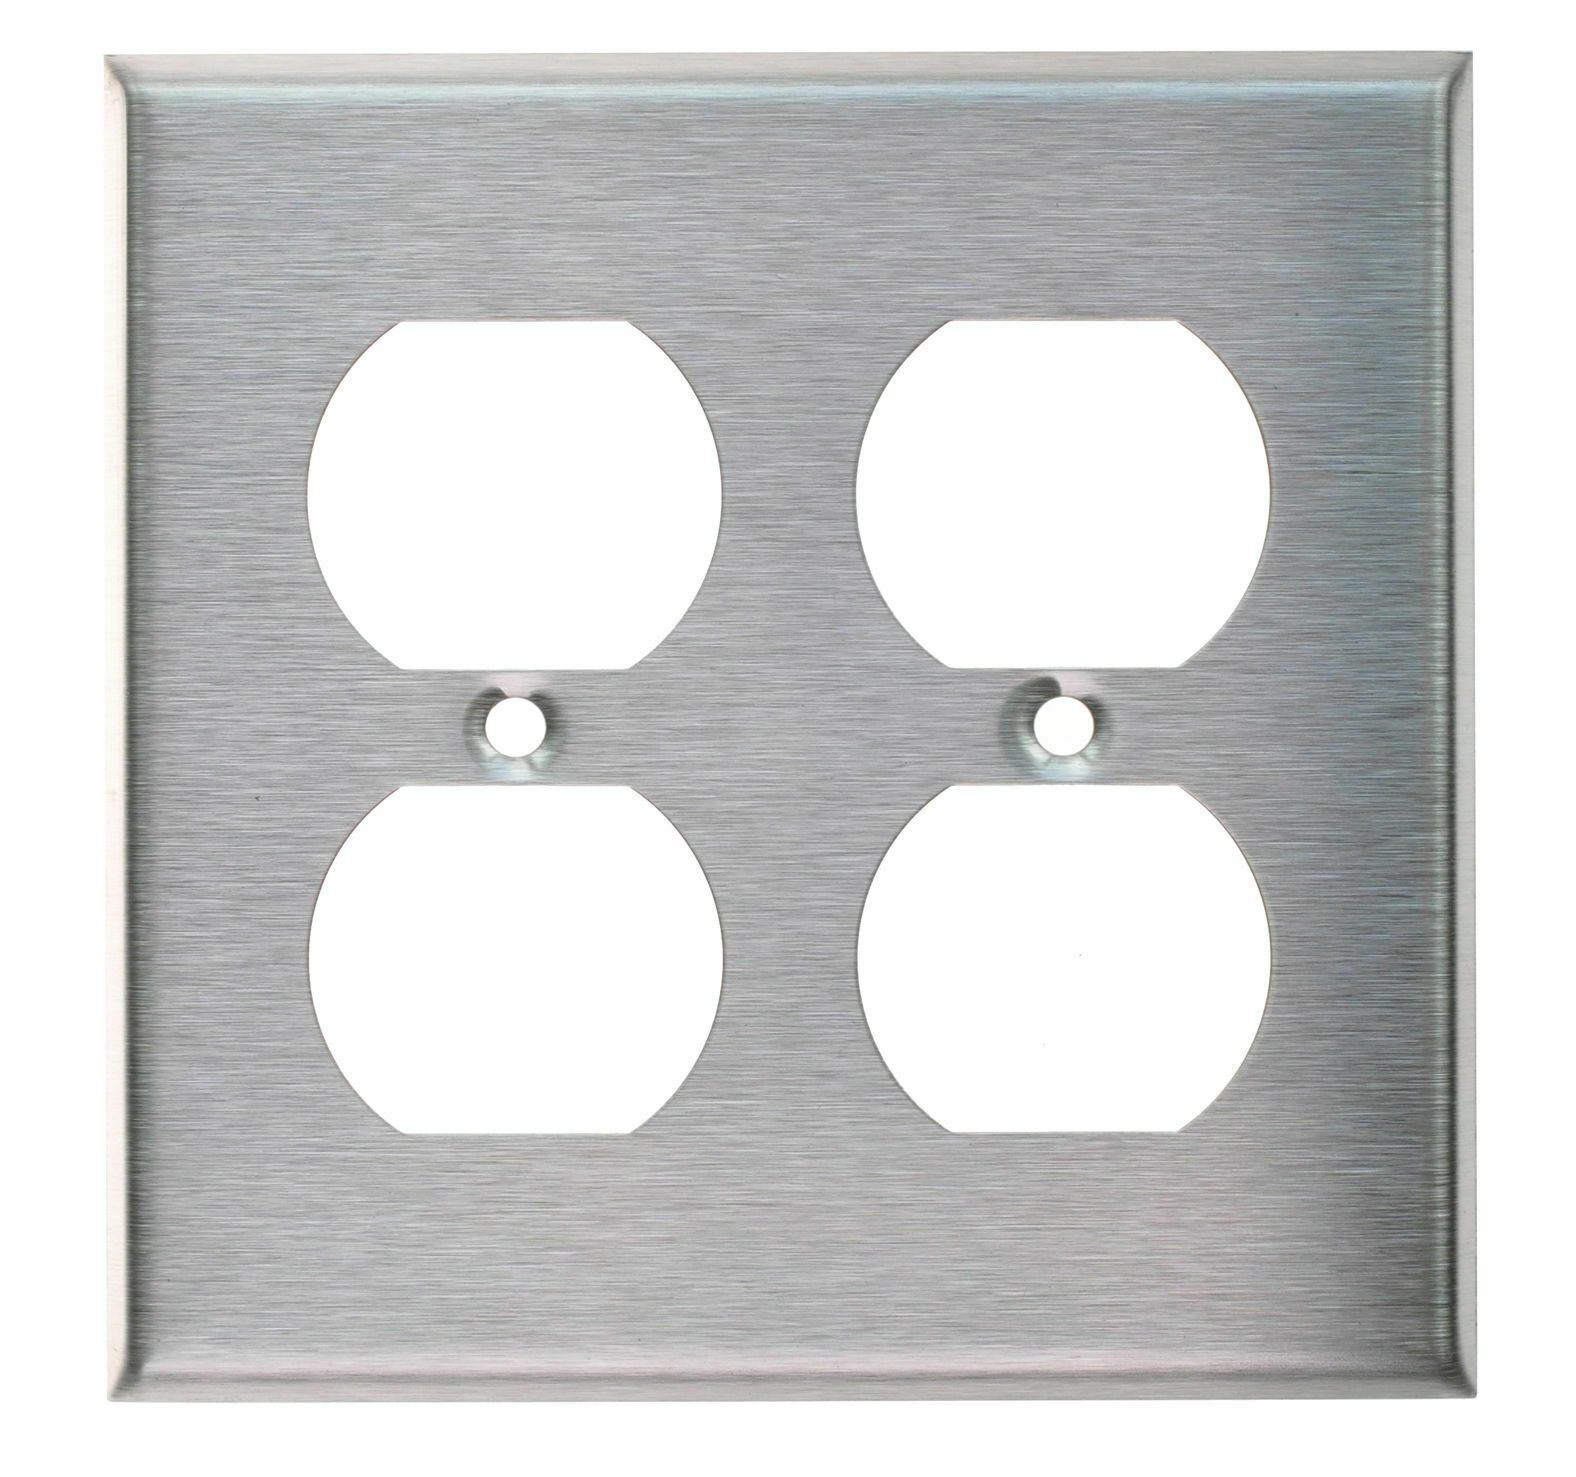 Brushed Stainless Steel Outlet Cover Duplex Metal Wall